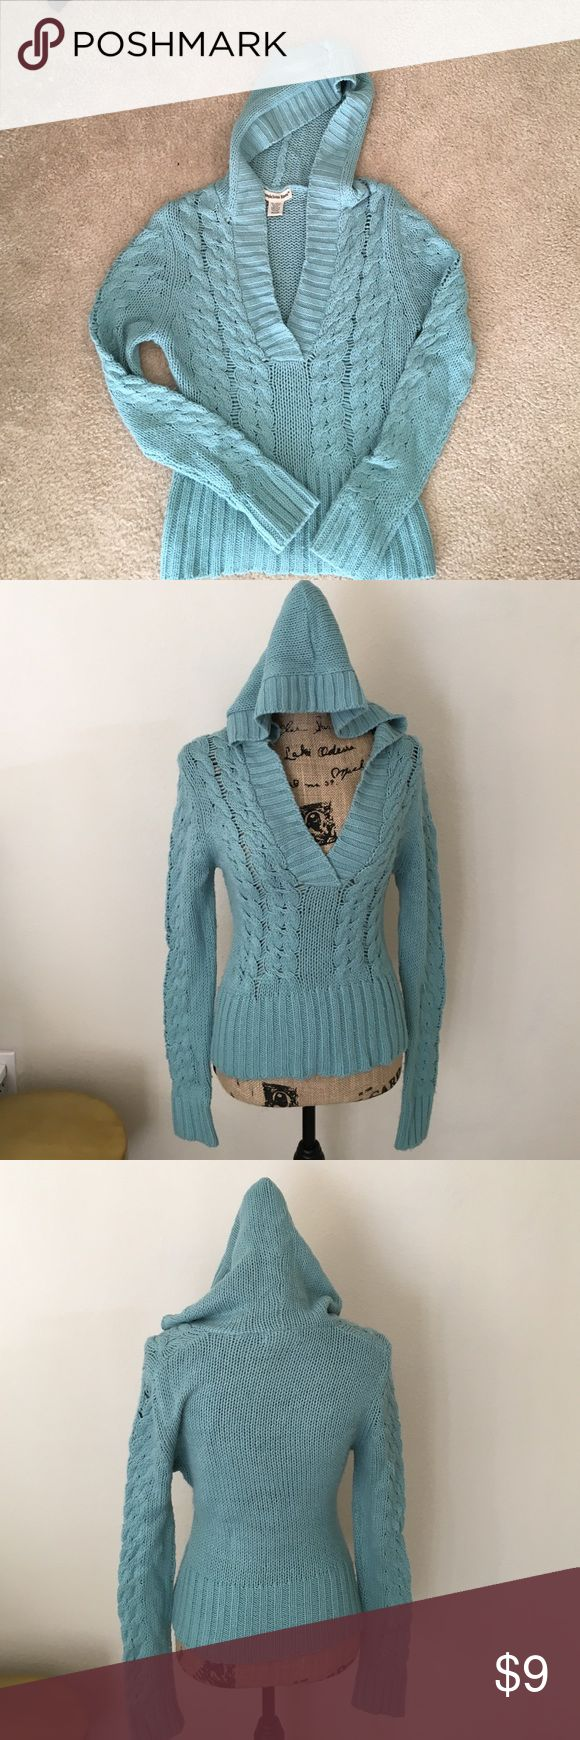 Sweater Hoody Cute sweater hoody for those get-up-and- go days, no ironing necessary. Great for a juniors or petite women. Size M, good condition with one snag (pic #4). Sweaters V-Necks